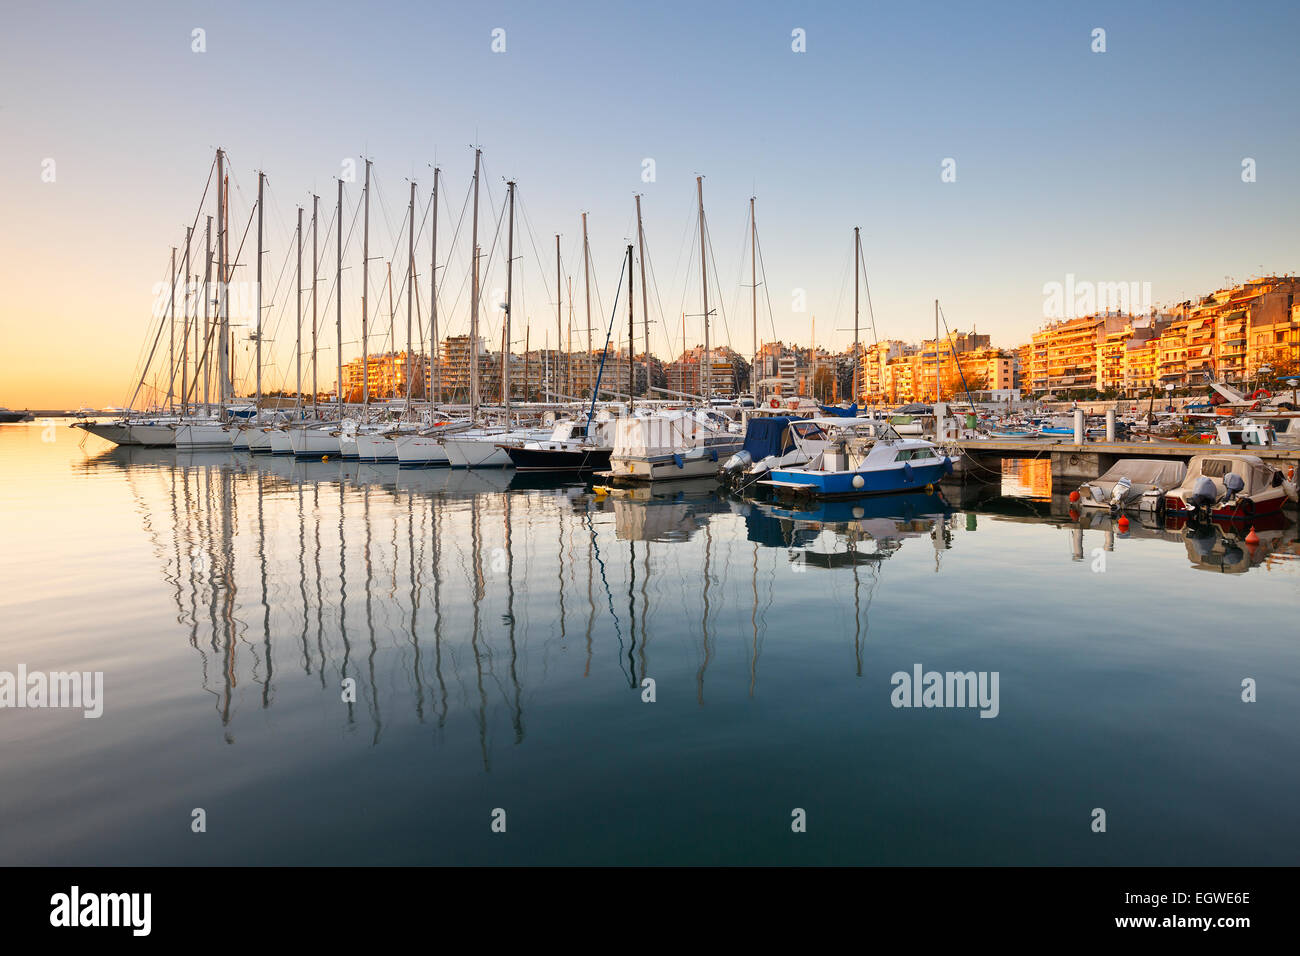 Sail boats in Zea Marina in Athens, Greece. - Stock Image